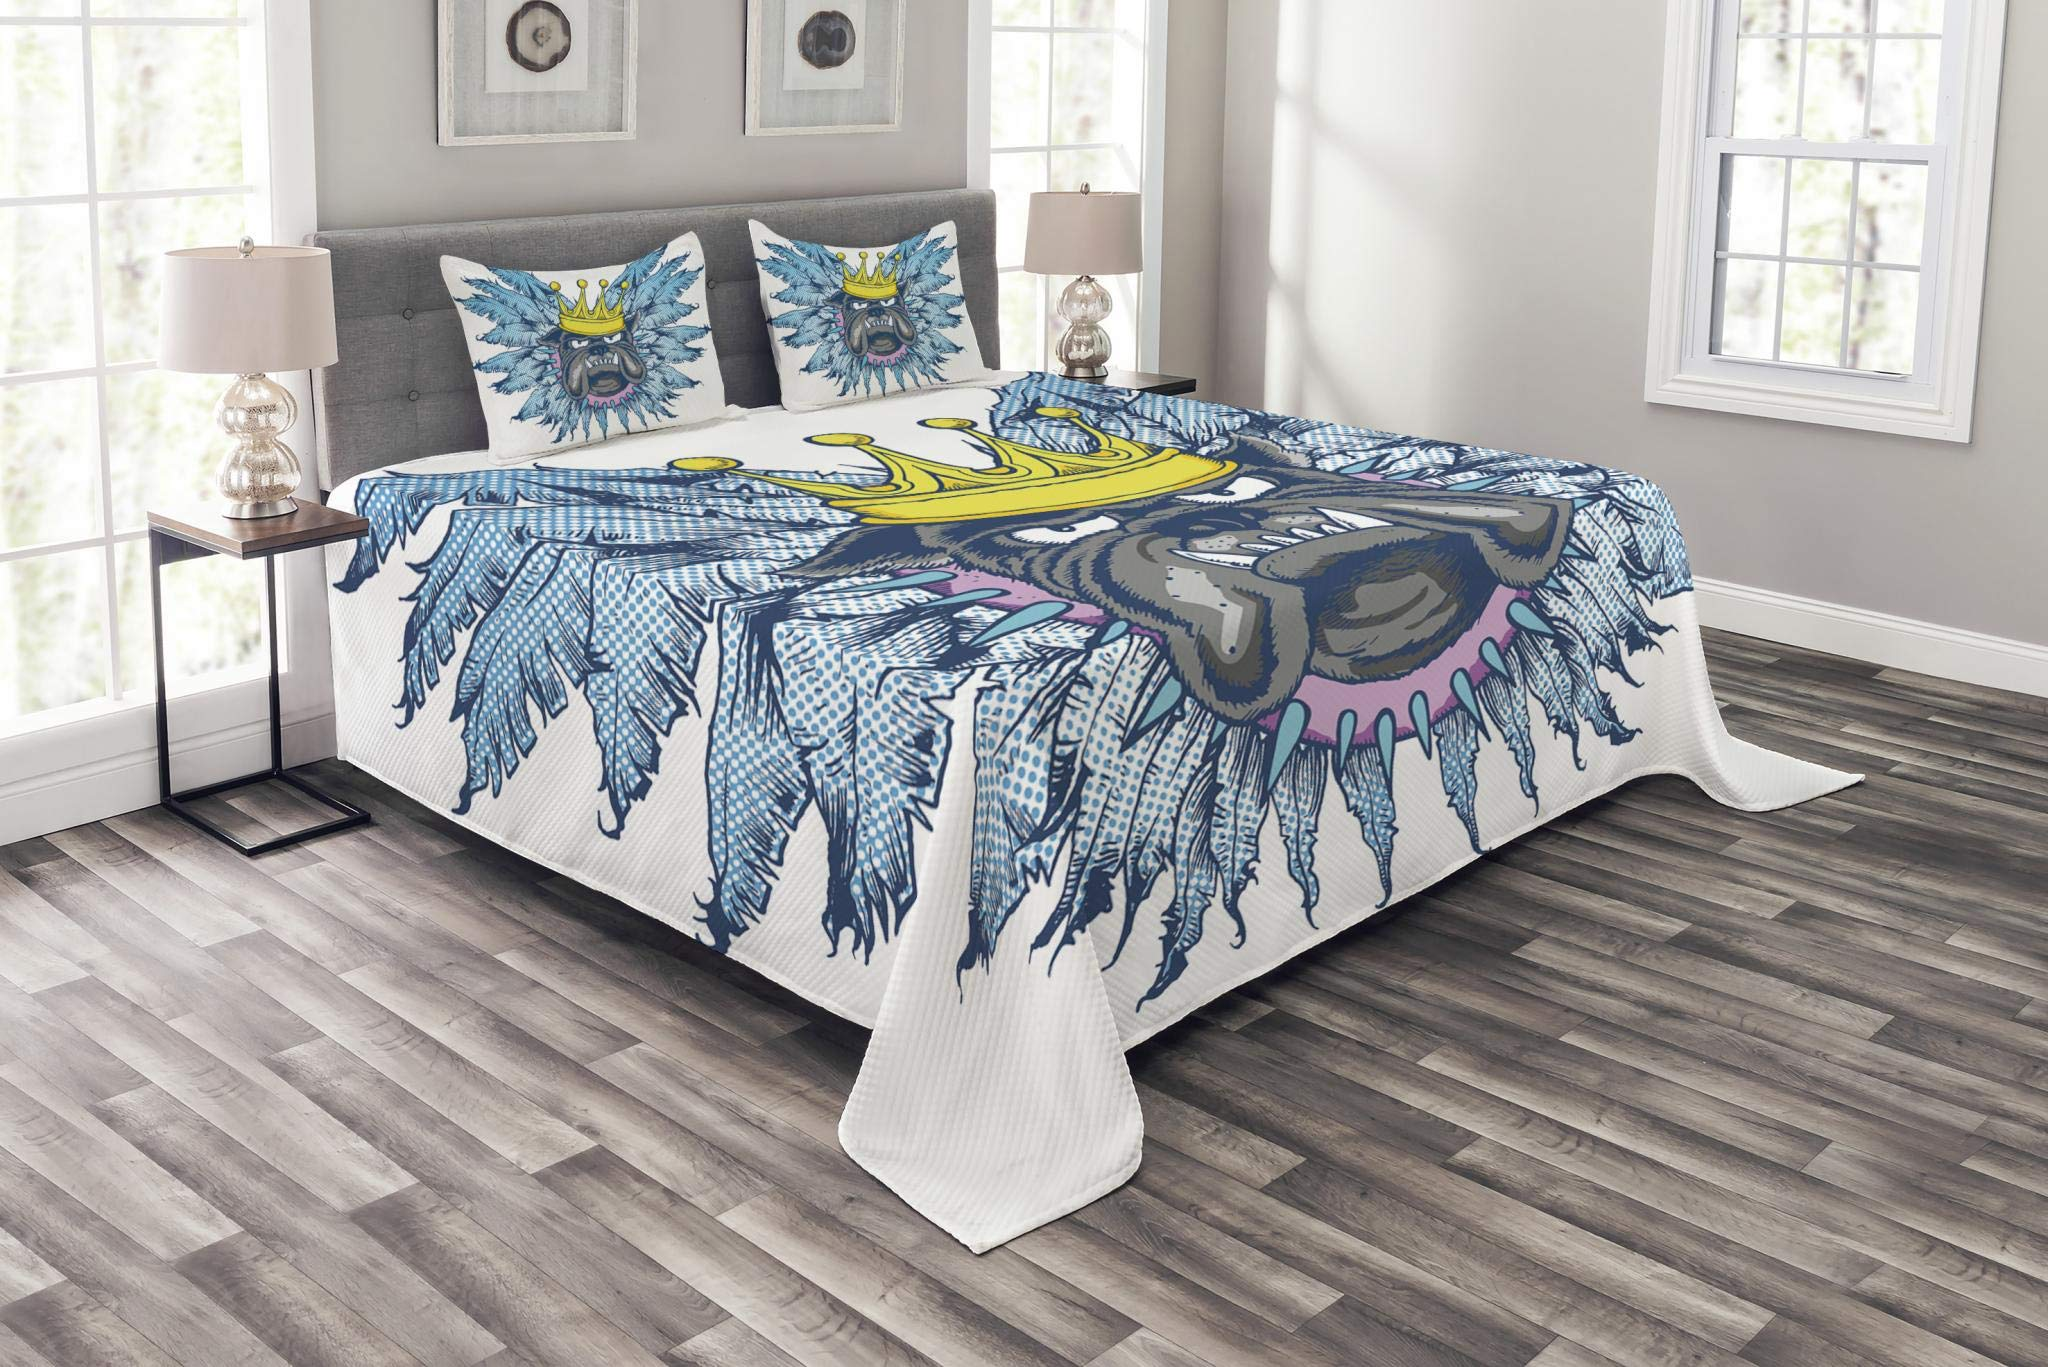 Lunarable Humor Bedspread Set King Size, Grumpy King Puppy Dog with Wing Feathers Fun Cartoon Animal Illustration, Decorative Quilted 3 Piece Coverlet Set with 2 Pillow Shams, Violet Blue Yellow Grey